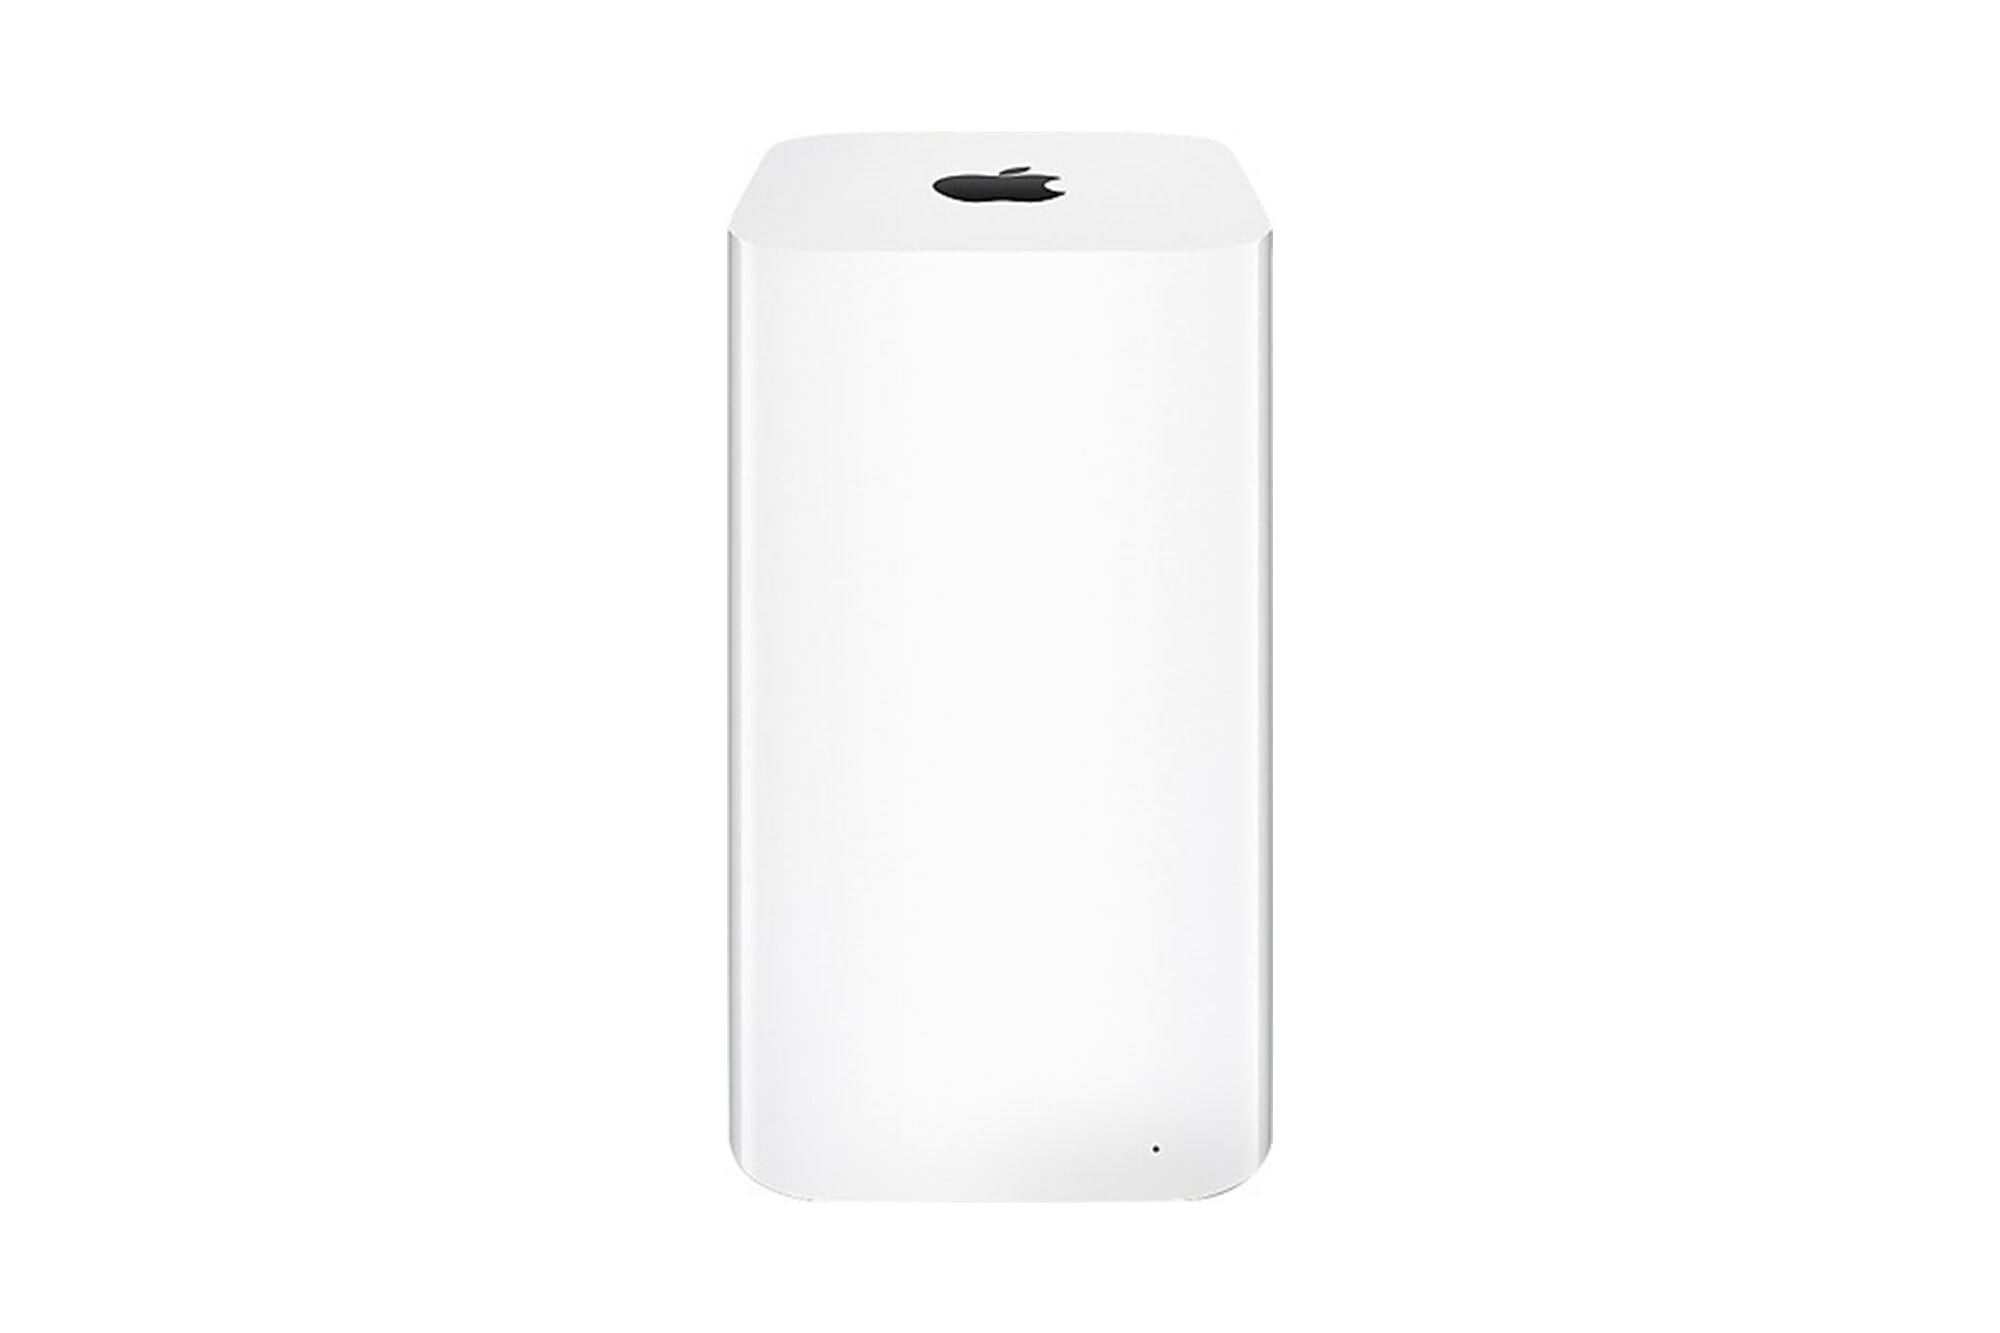 Apple Airport Extreme Amplifi Hd Review Wireless Mesh Network For Better Wifi